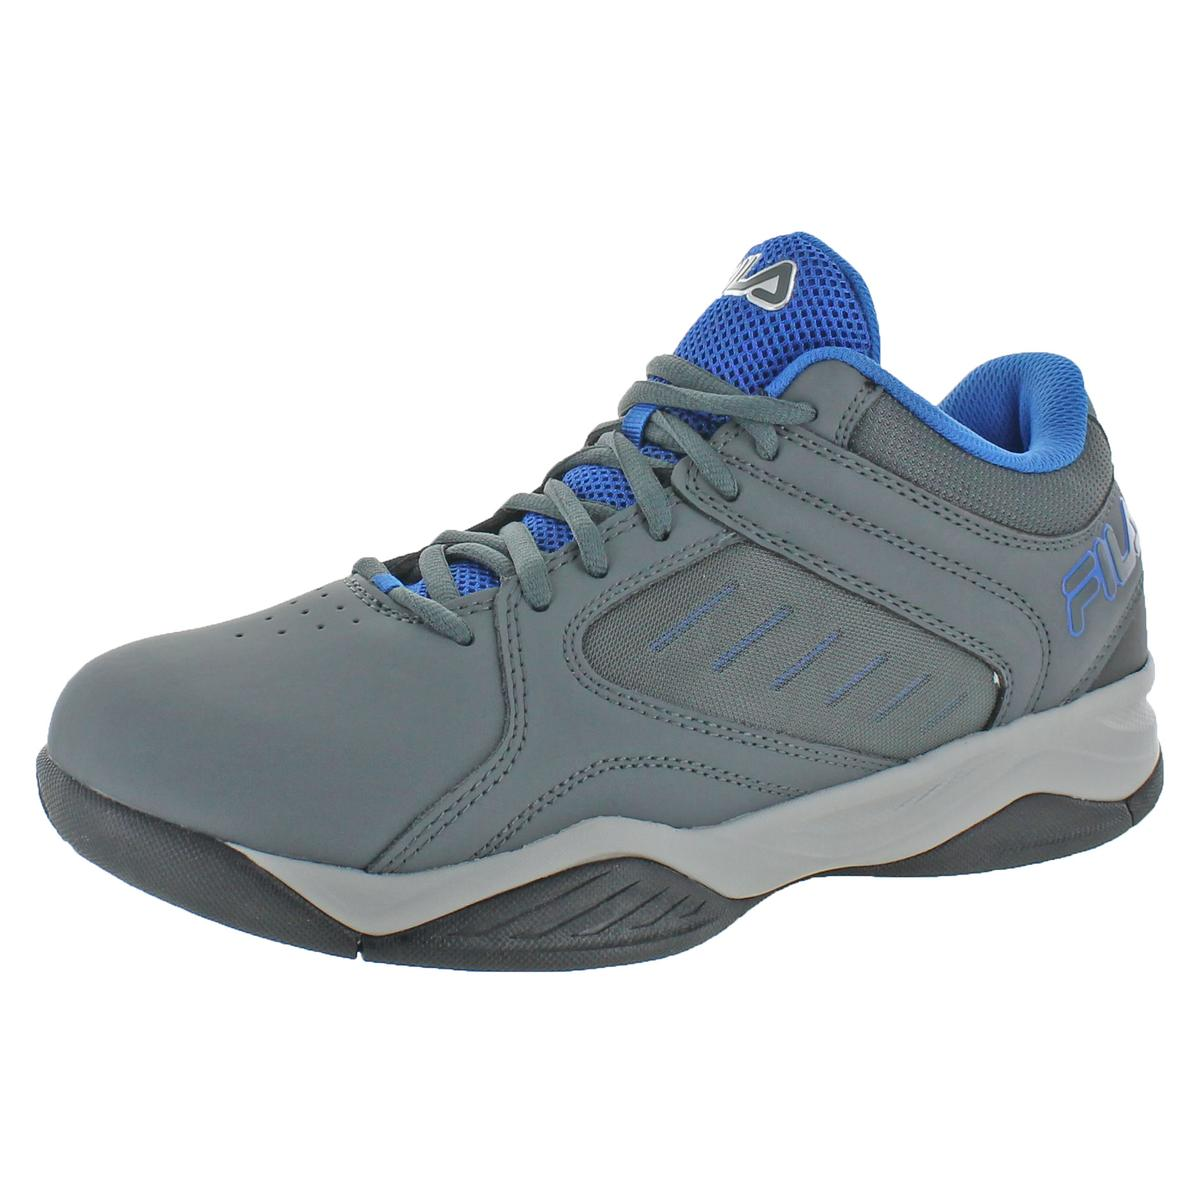 fila men's athletic shoes